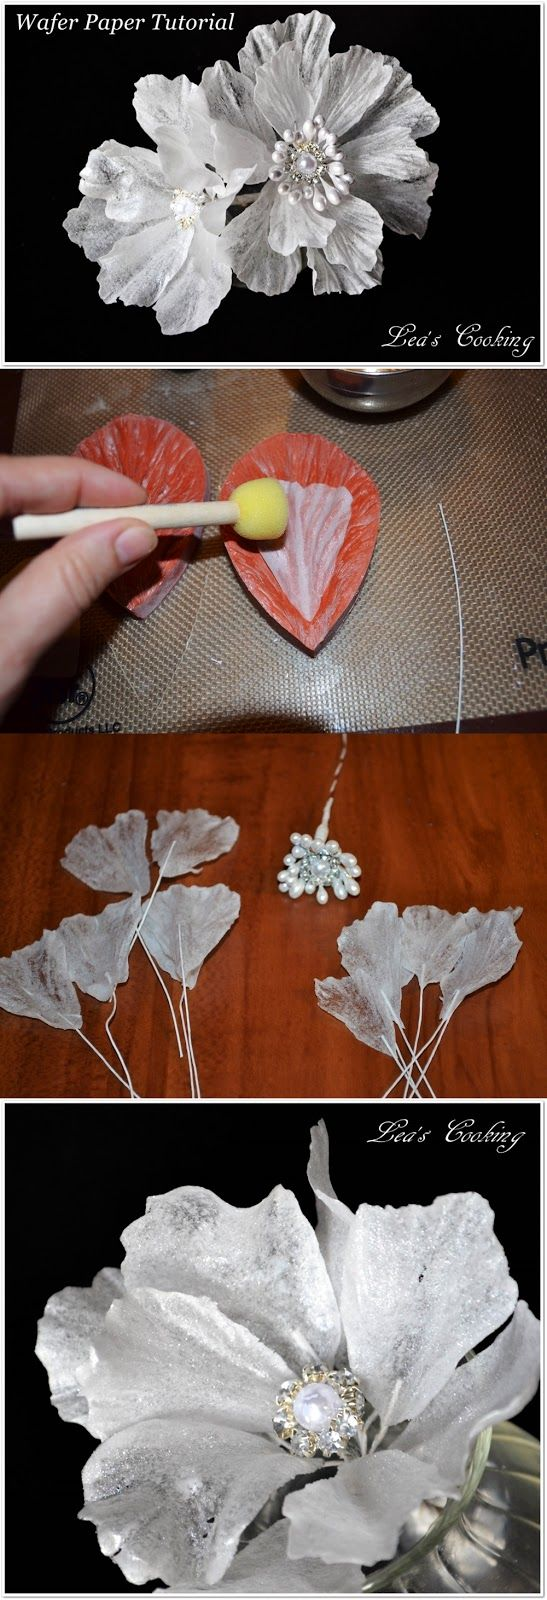 Wafer paper flowers are ultra light, thin, detailed and translucent. Here is an easy tutorial for you guys...